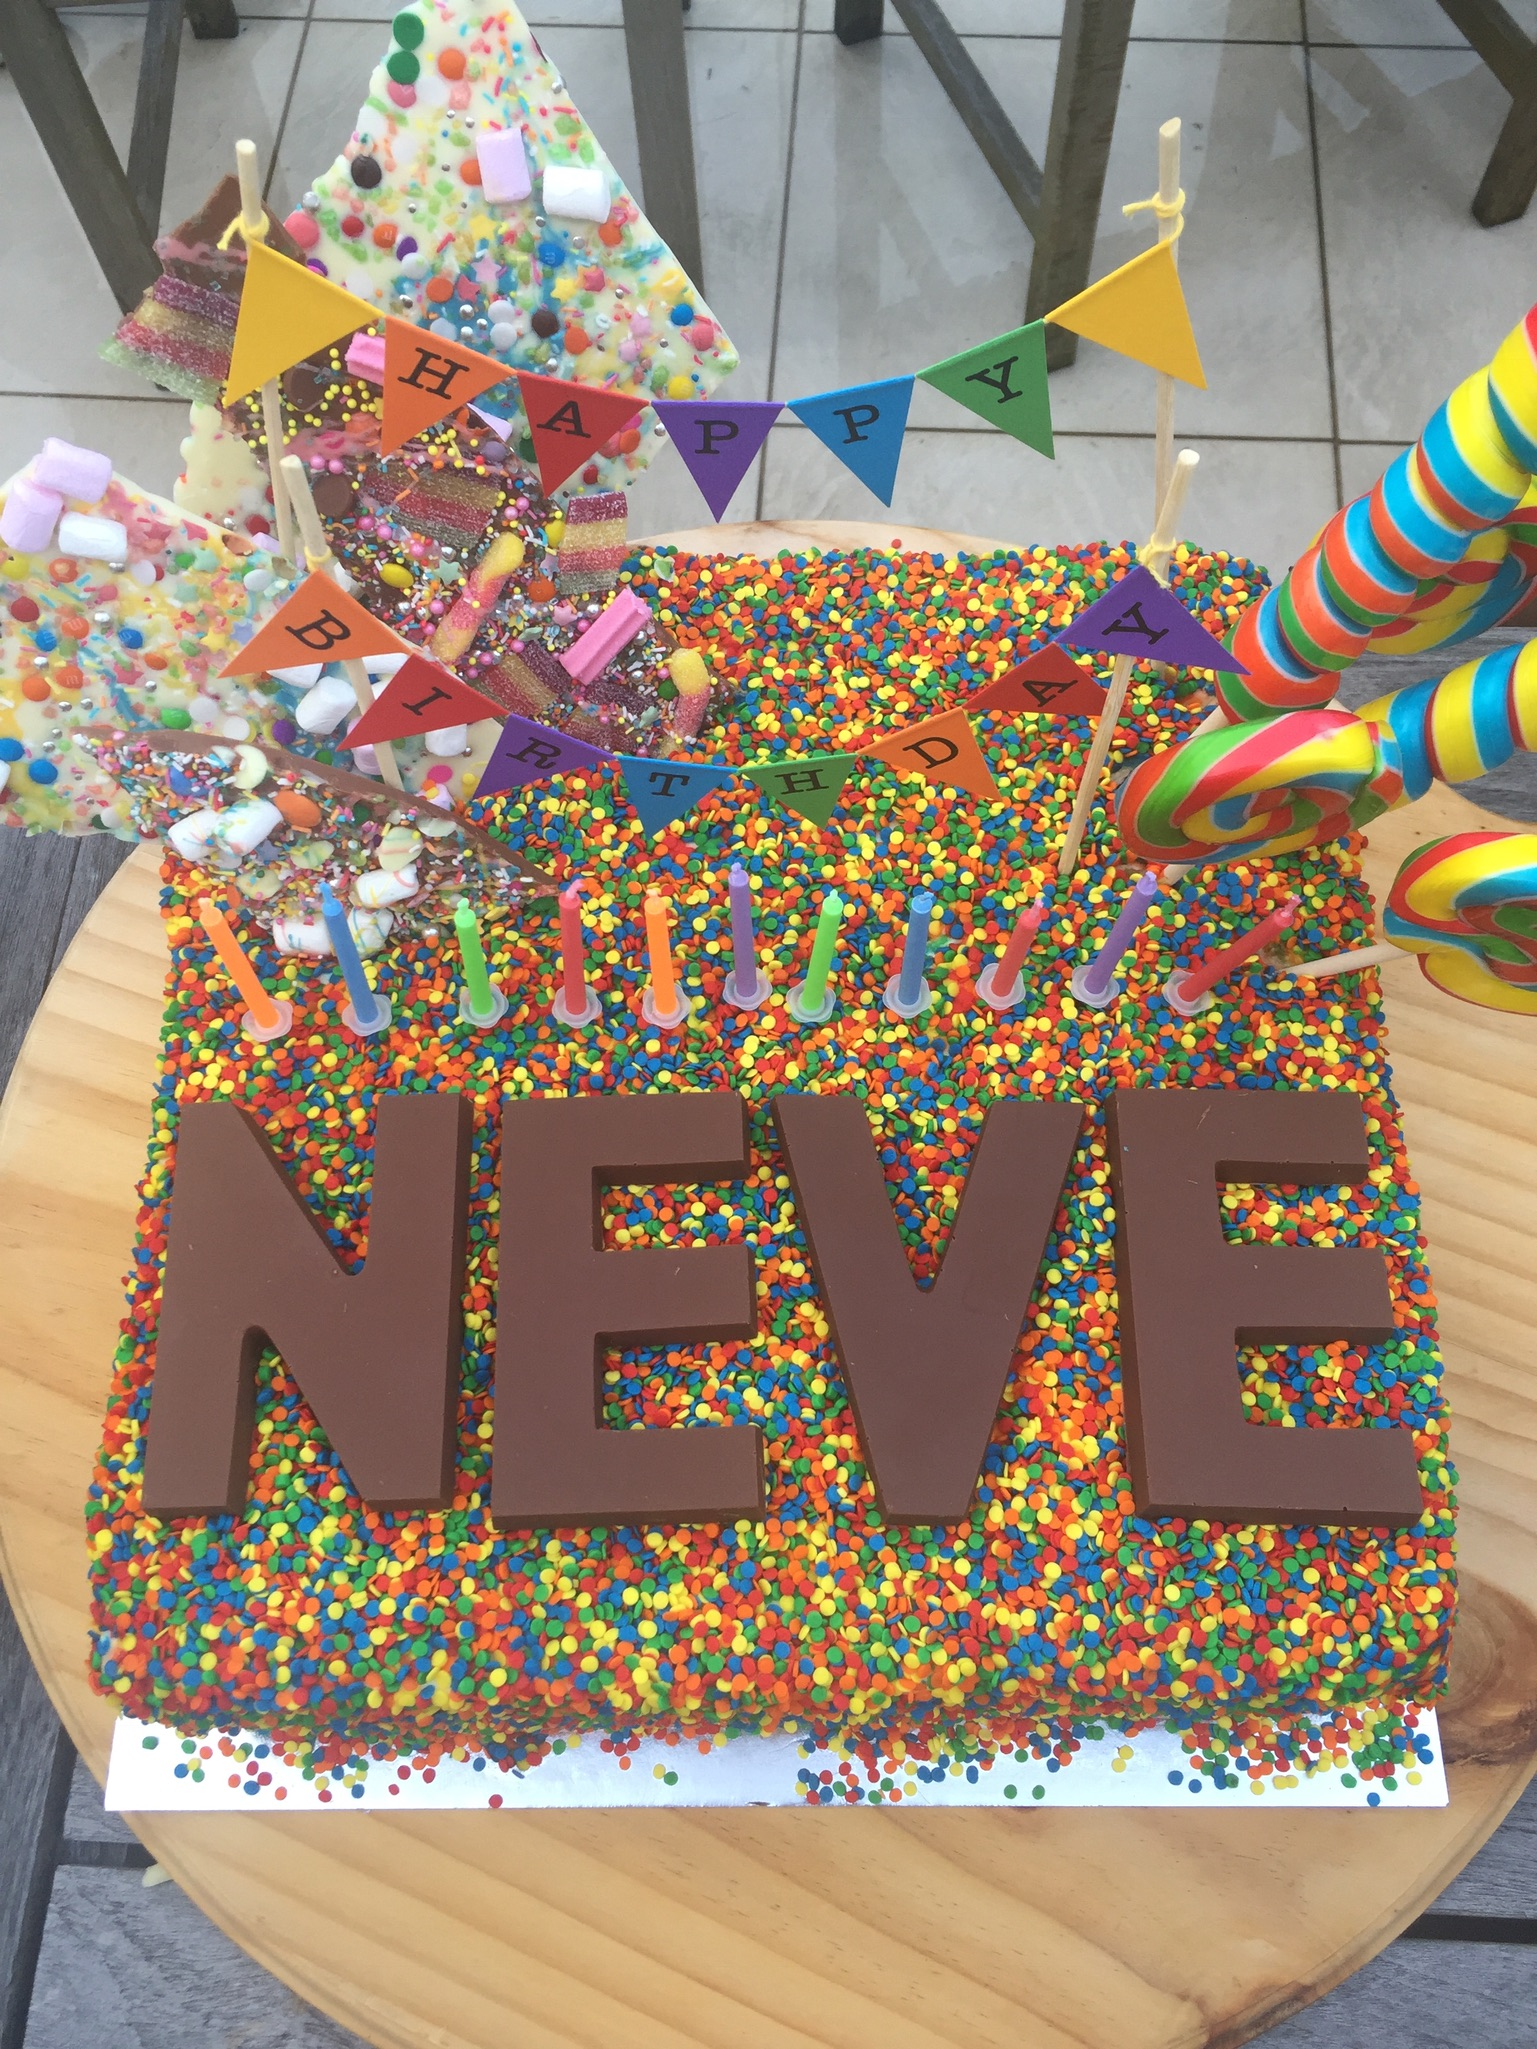 A Rainbow Layered Birthday Cake with Sprinkles and Chocolate Letters for Neve's Rainbow Unicorn Themed Birthday Party | Be inspired by this Rainbow Unicorn Themed Pool Party, created by The Real Housewives of Sydney's Nicole O'Neil for her daughter Neve's 11th Birthday. Featuring a beautiful rainbow snack bar, rainbow sprinkle cake and much more.